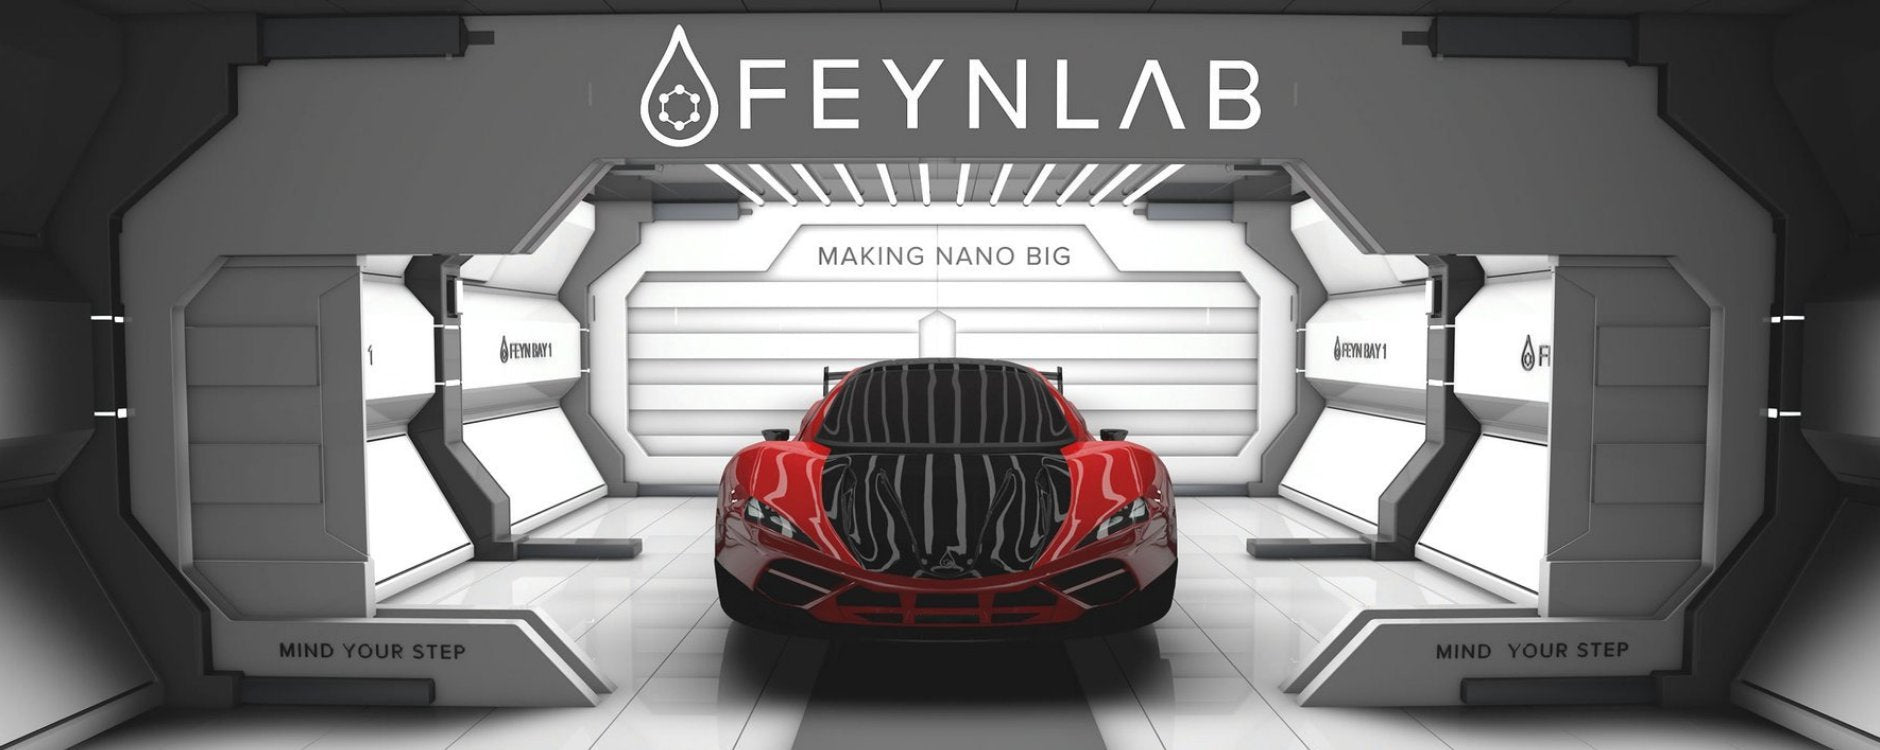 "FEYNLAB™ is the world leader in fine resin manufacturing for automotive, aerospace, and marine applications. Our team of scientists include alumni of some of the most prestigious institutions in the world, including Oxford University. Nanotechnology is a new and exciting field, with many great discoveries to be made yet, here at Feynlab we see ourselves as the pioneers of nano resin systems, and will continue to push the boundaries of surface science. After all, it was one of our founders, John Suerth, whom initially coined the term ""Ceramic Coating"" over 15 years ago, and there is no one that better understands this topic."